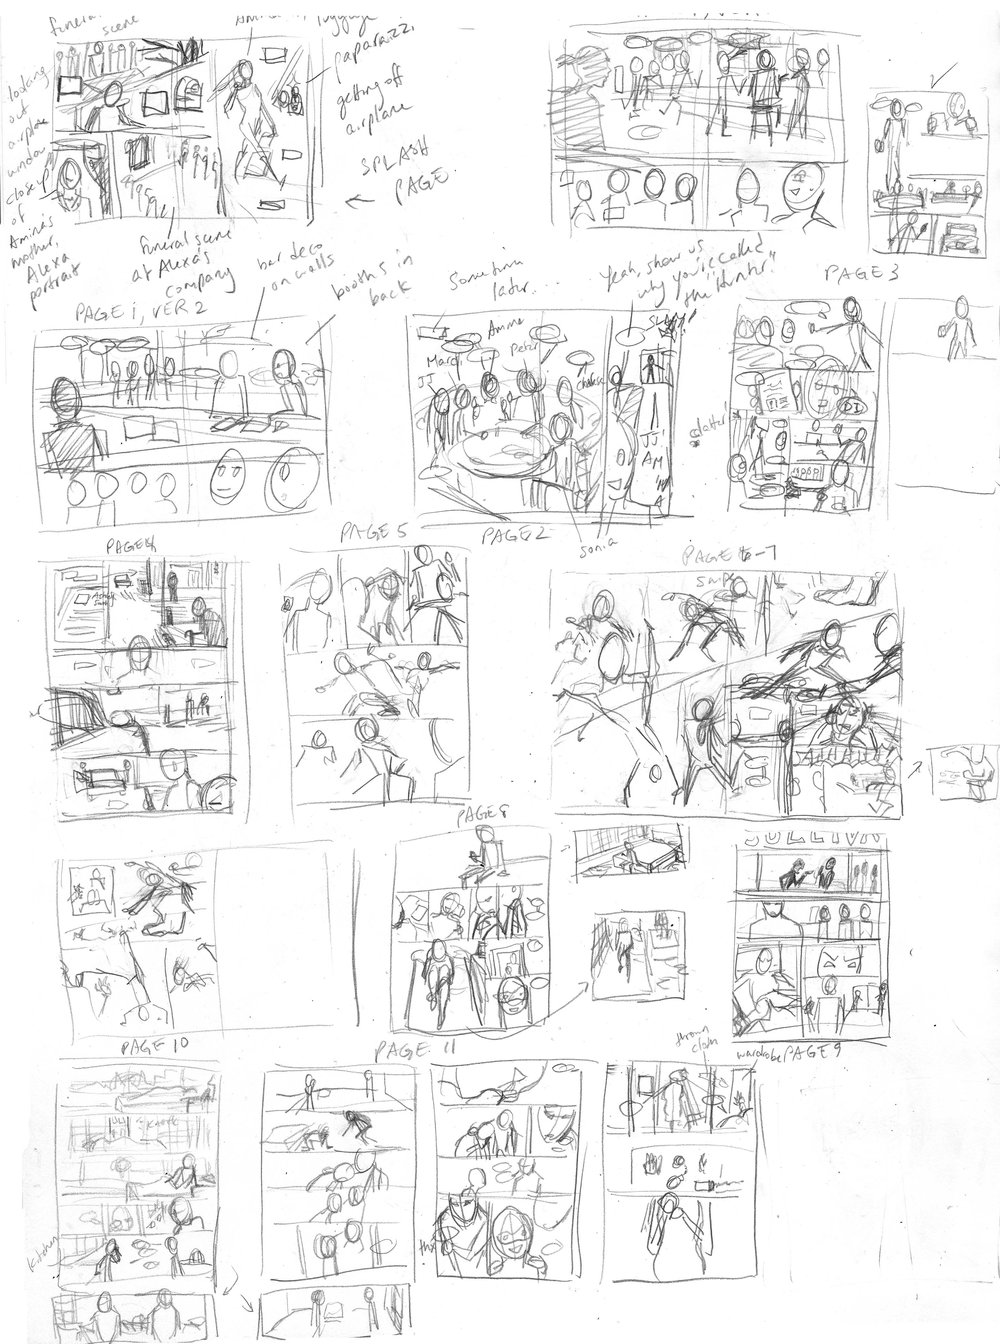 hunter haute_thumbnails sketch 1.jpg